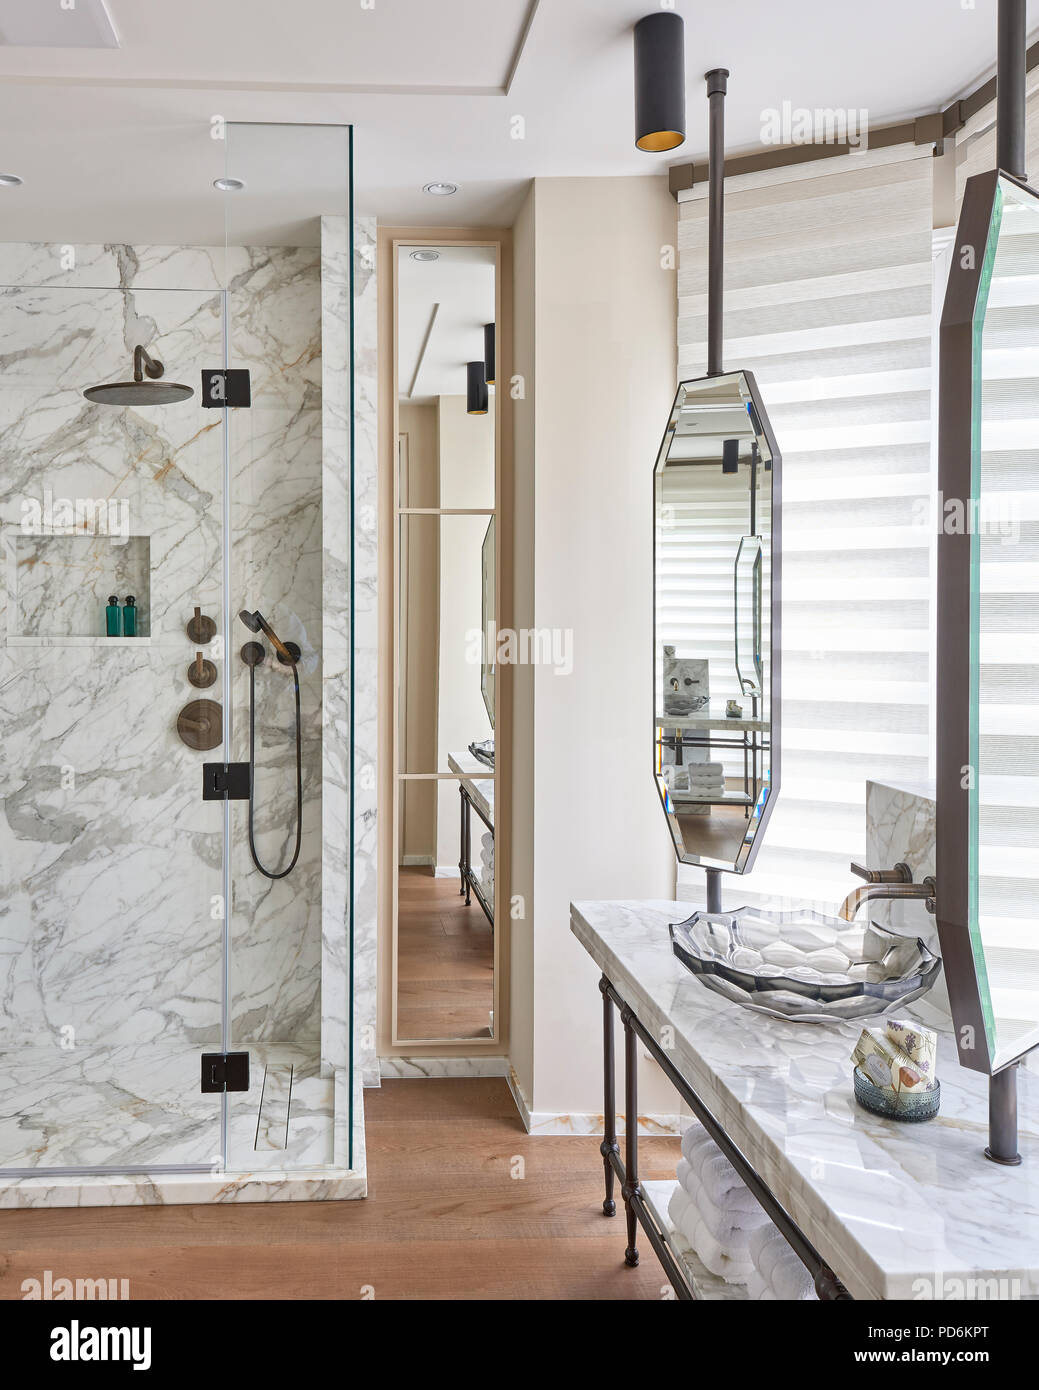 Marble shower cubicle with vintage mirrors and glass washbasin. - Stock Image